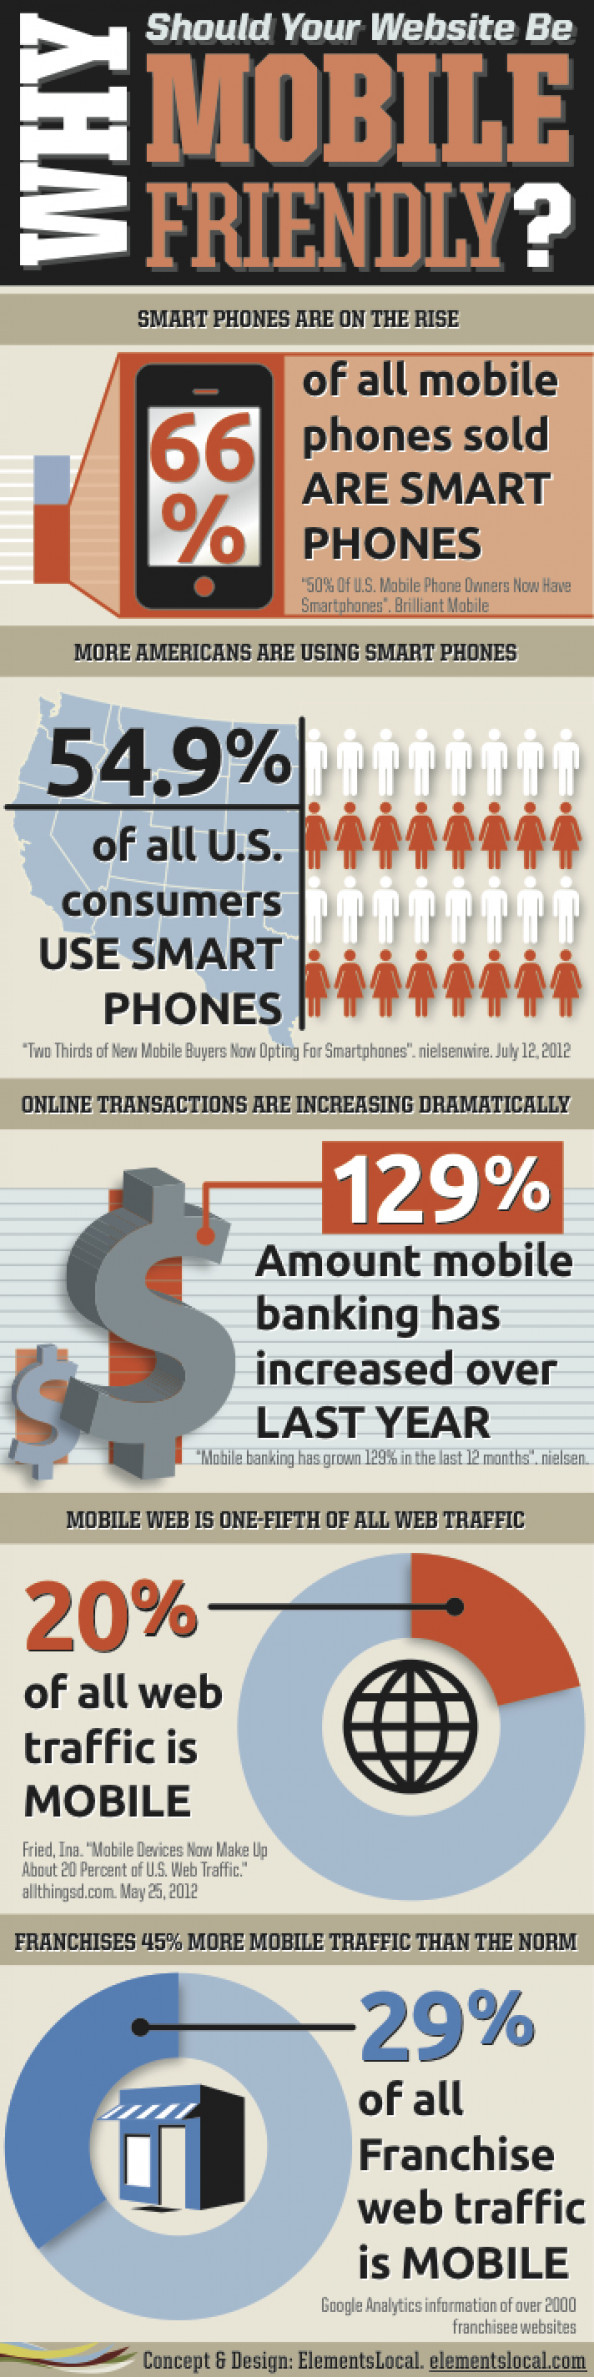 Why Should Your Website Be Mobile Friendly? Infographic